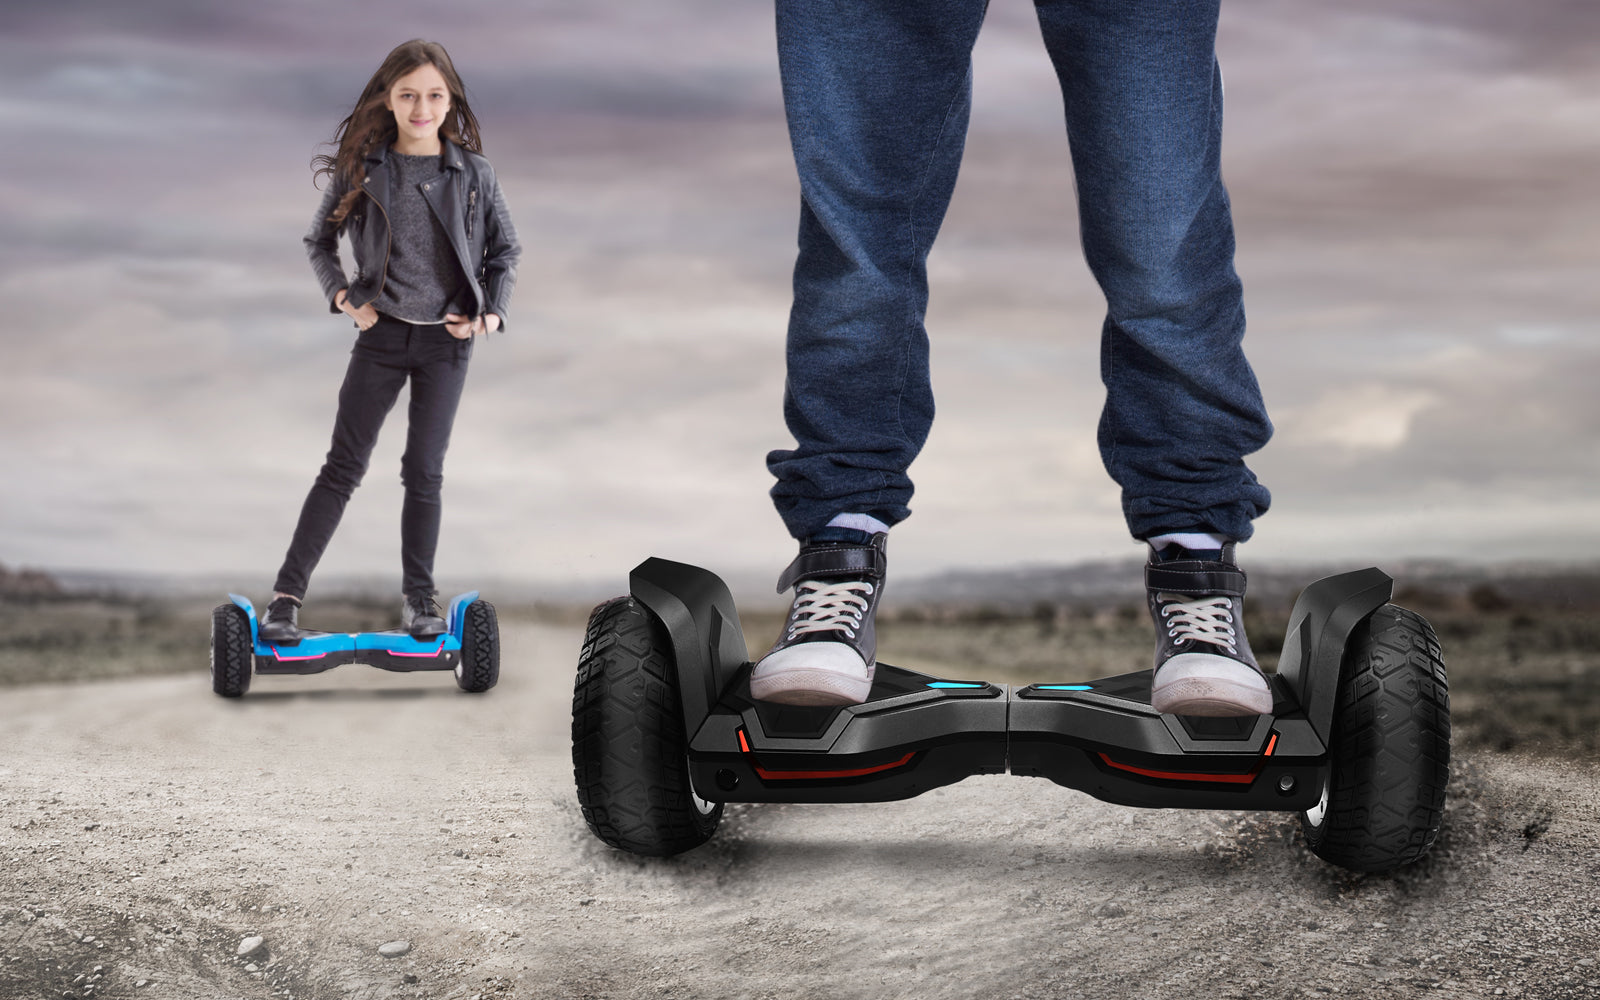 G2 OFF ROAD HOVERBOARD